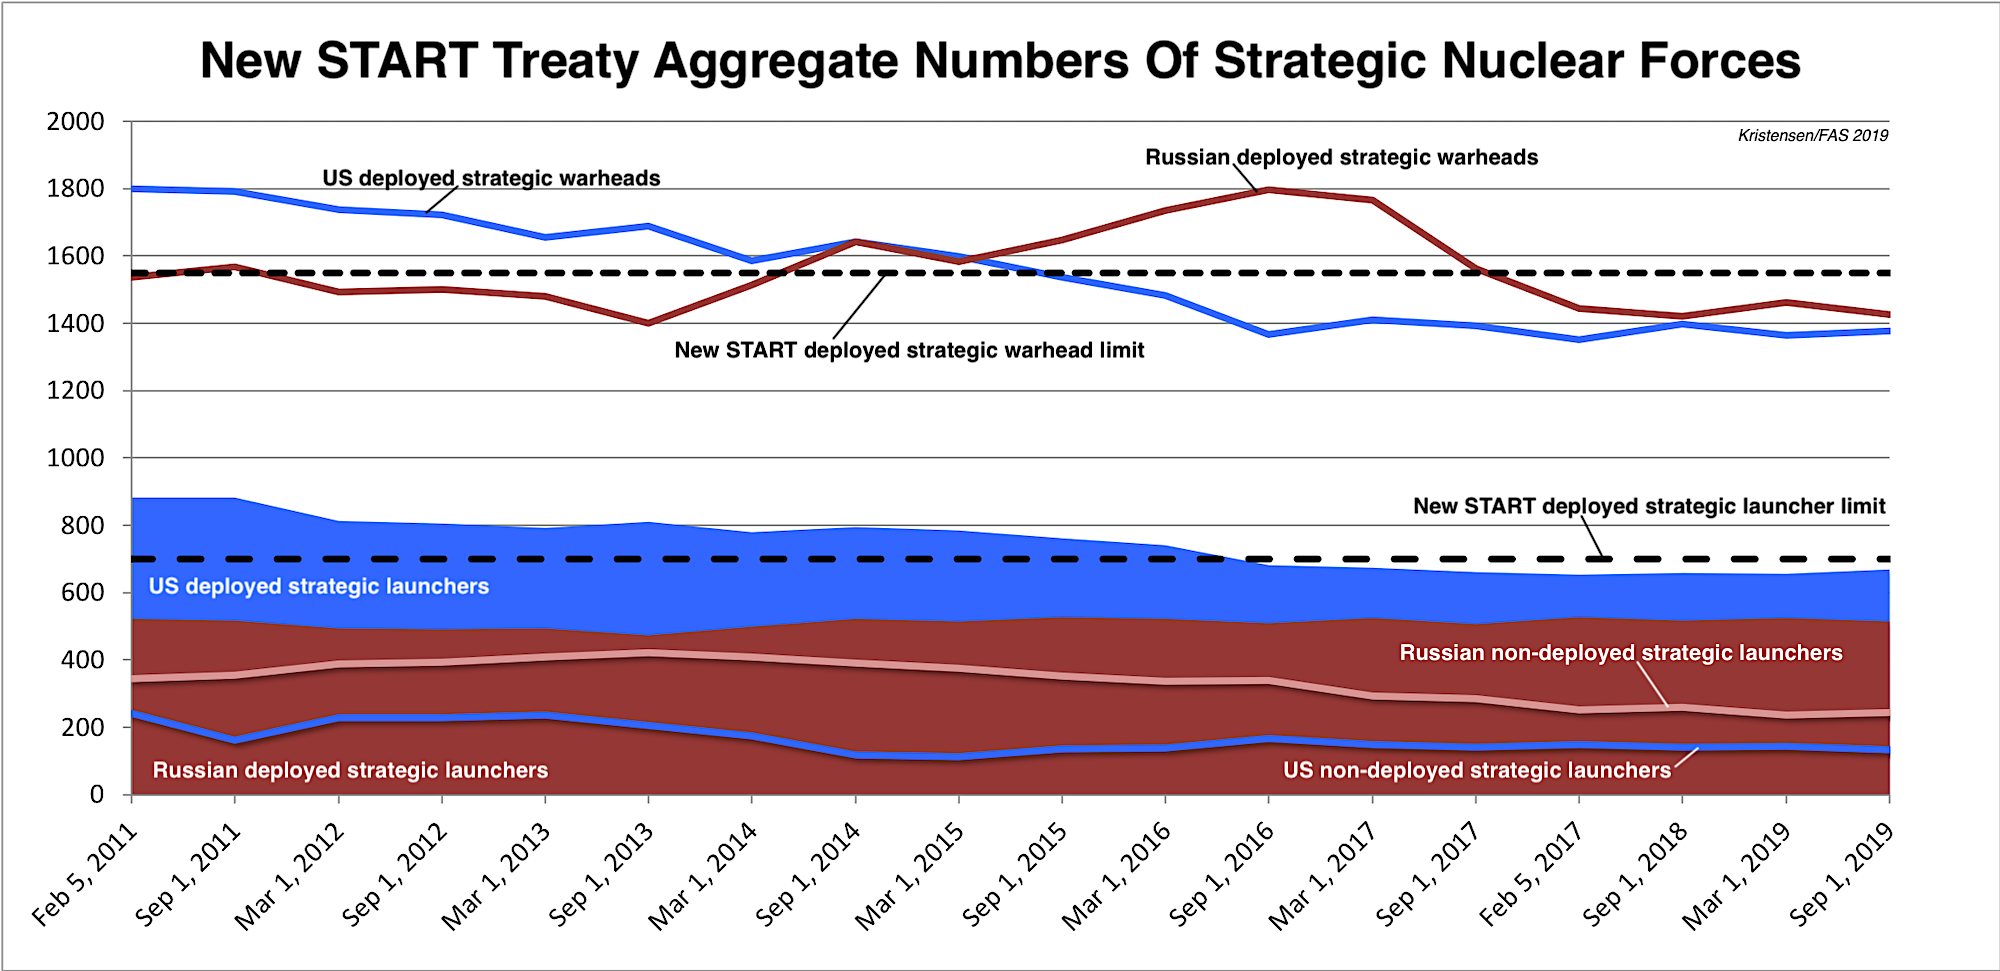 New START Treaty Data Shows Treaty Keeping Lid On Strategic Nukes